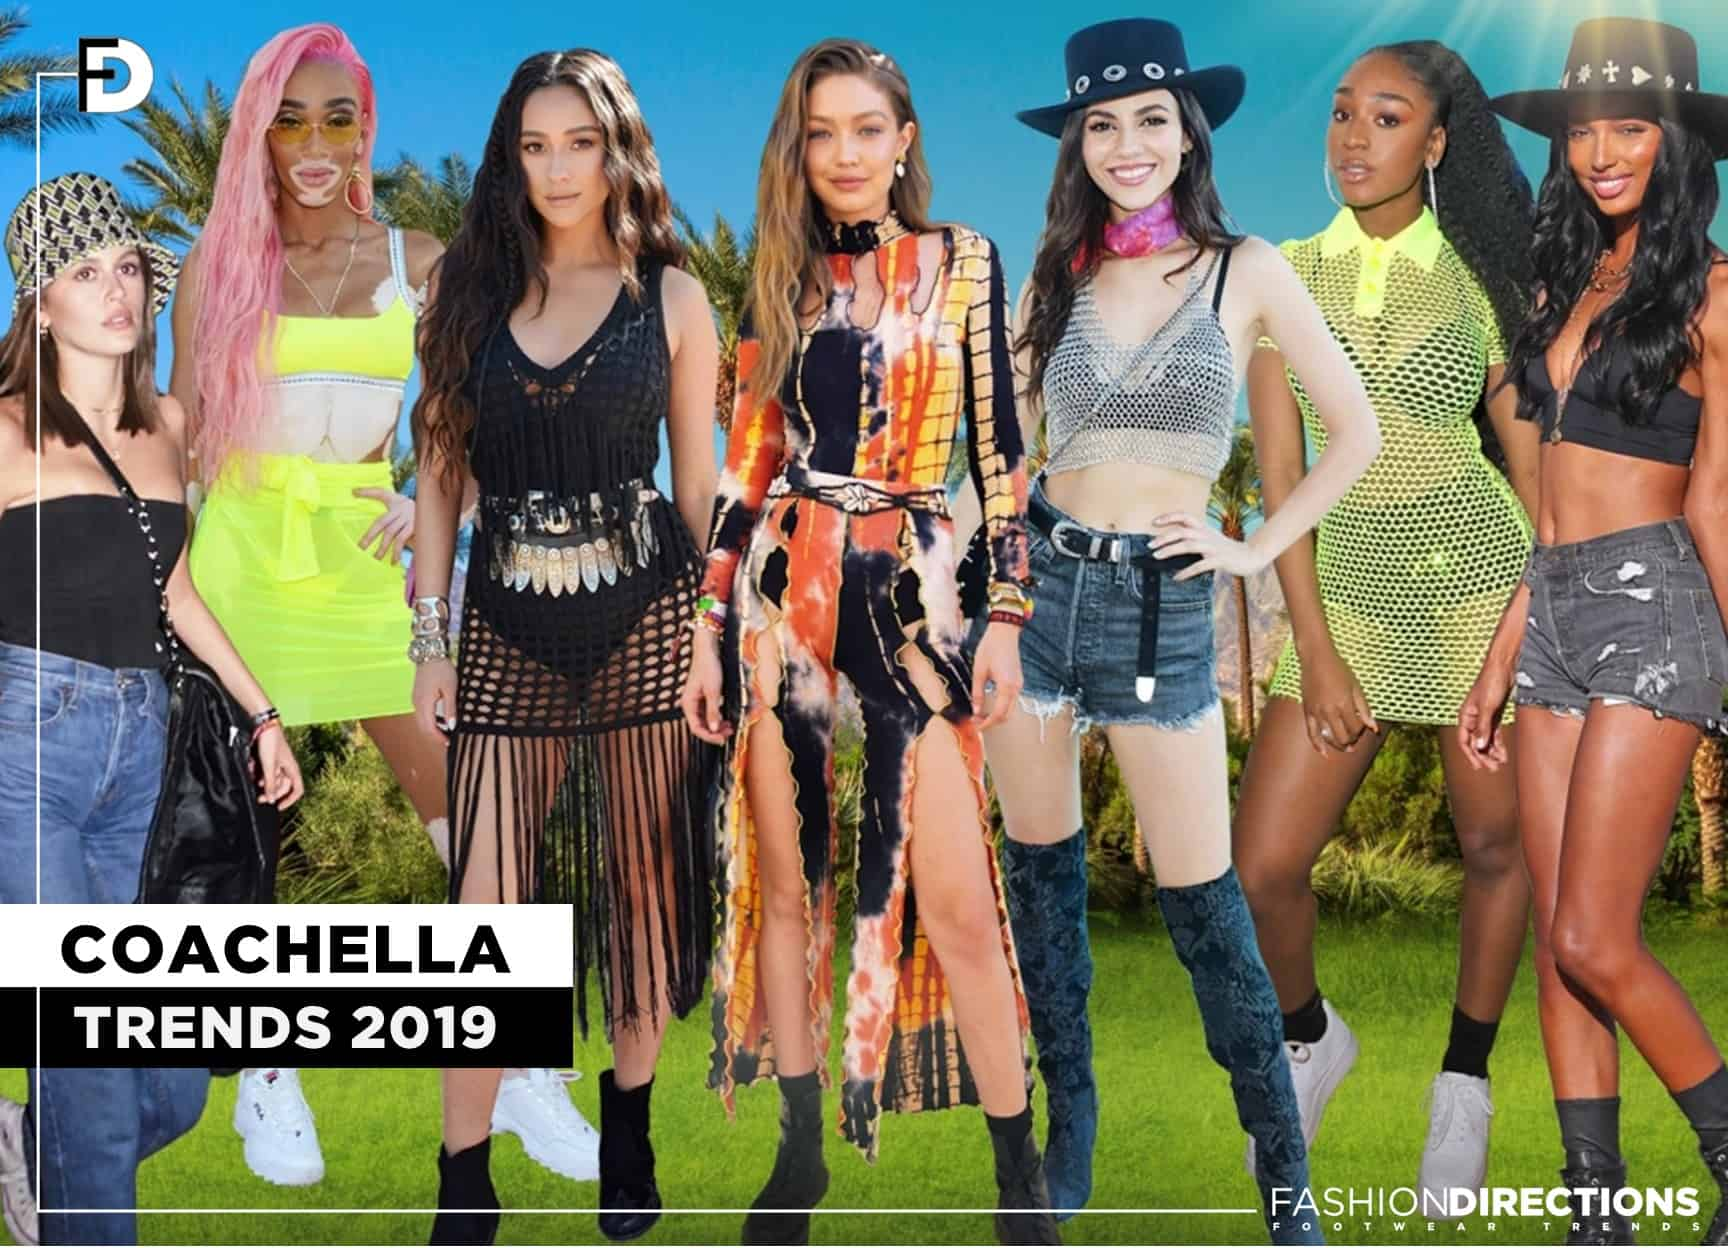 Coachella 2019 trends 1